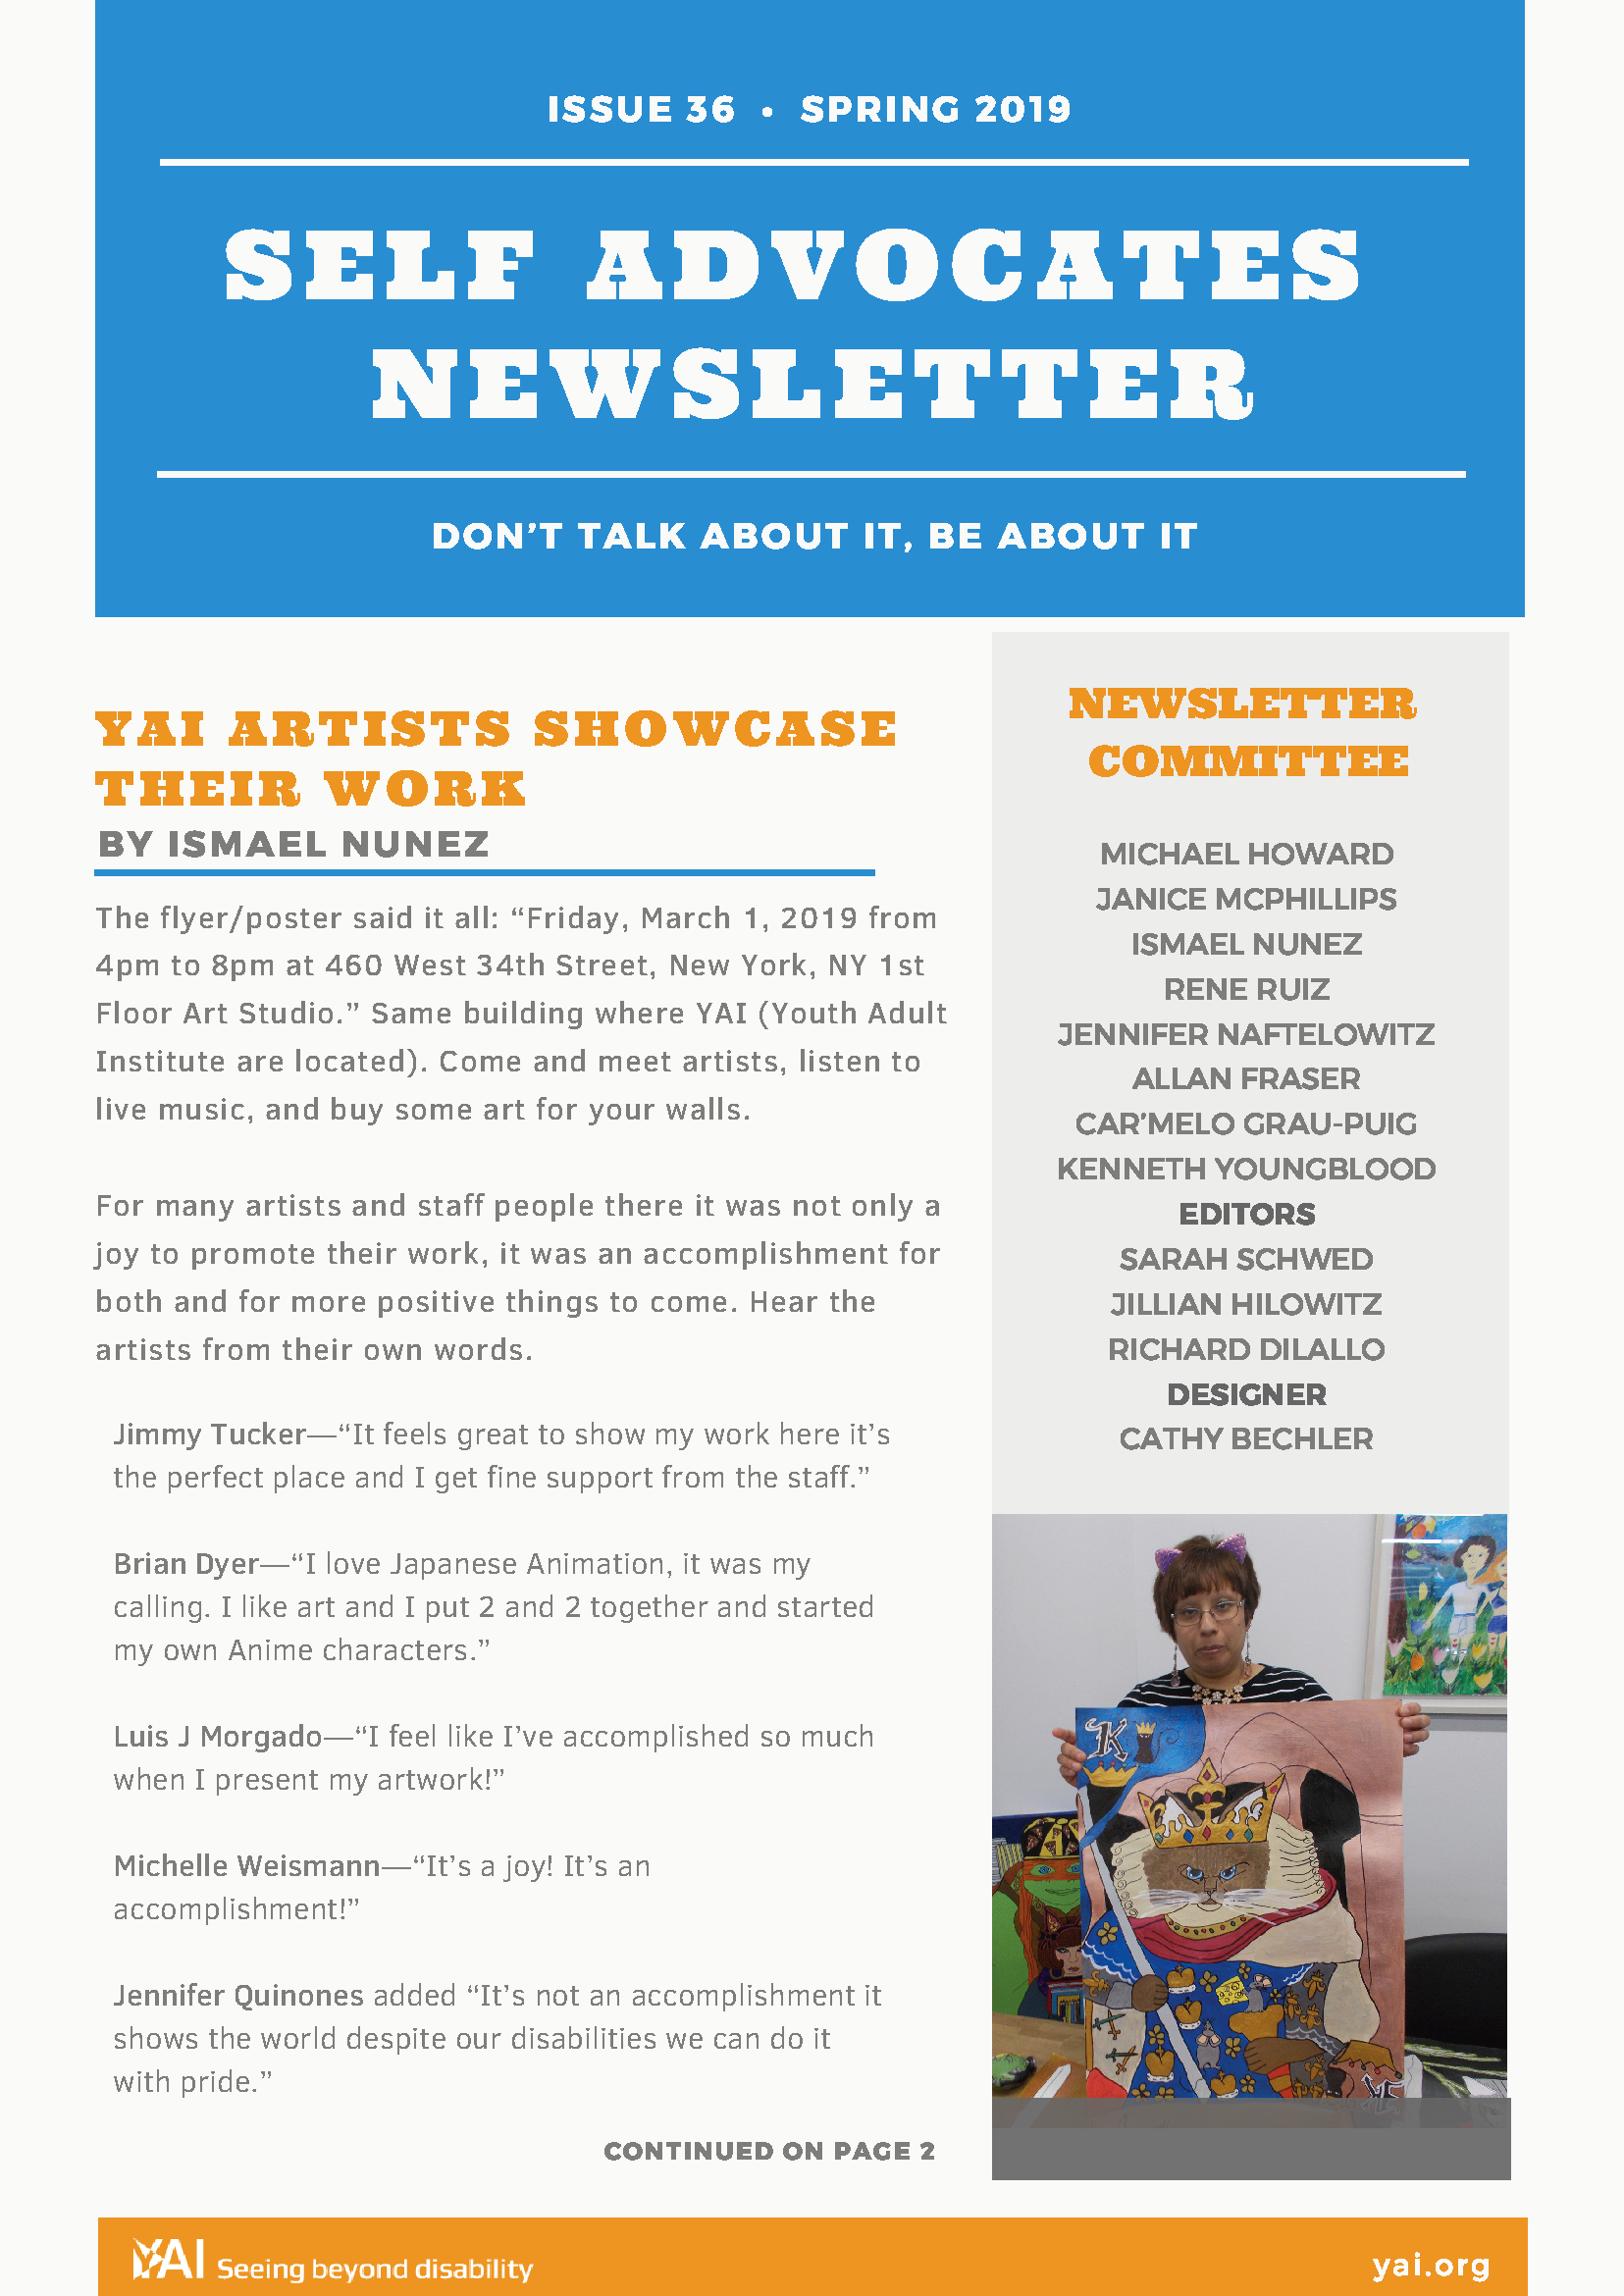 Front page of the Spring 2019 Self Advocate Newsletter